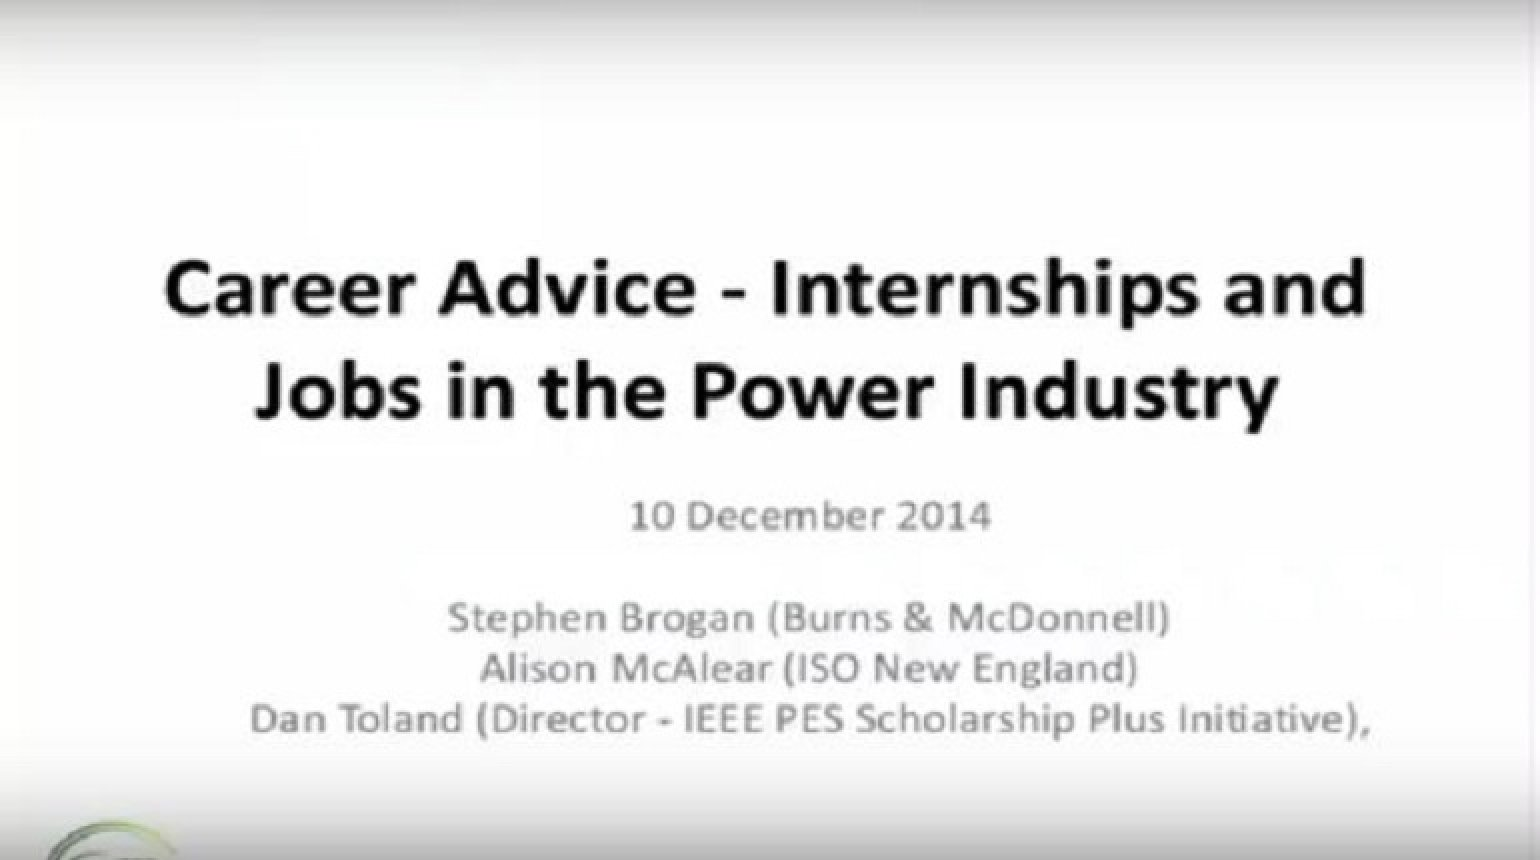 Career Advice - Internships and Jobs in the Power Industry